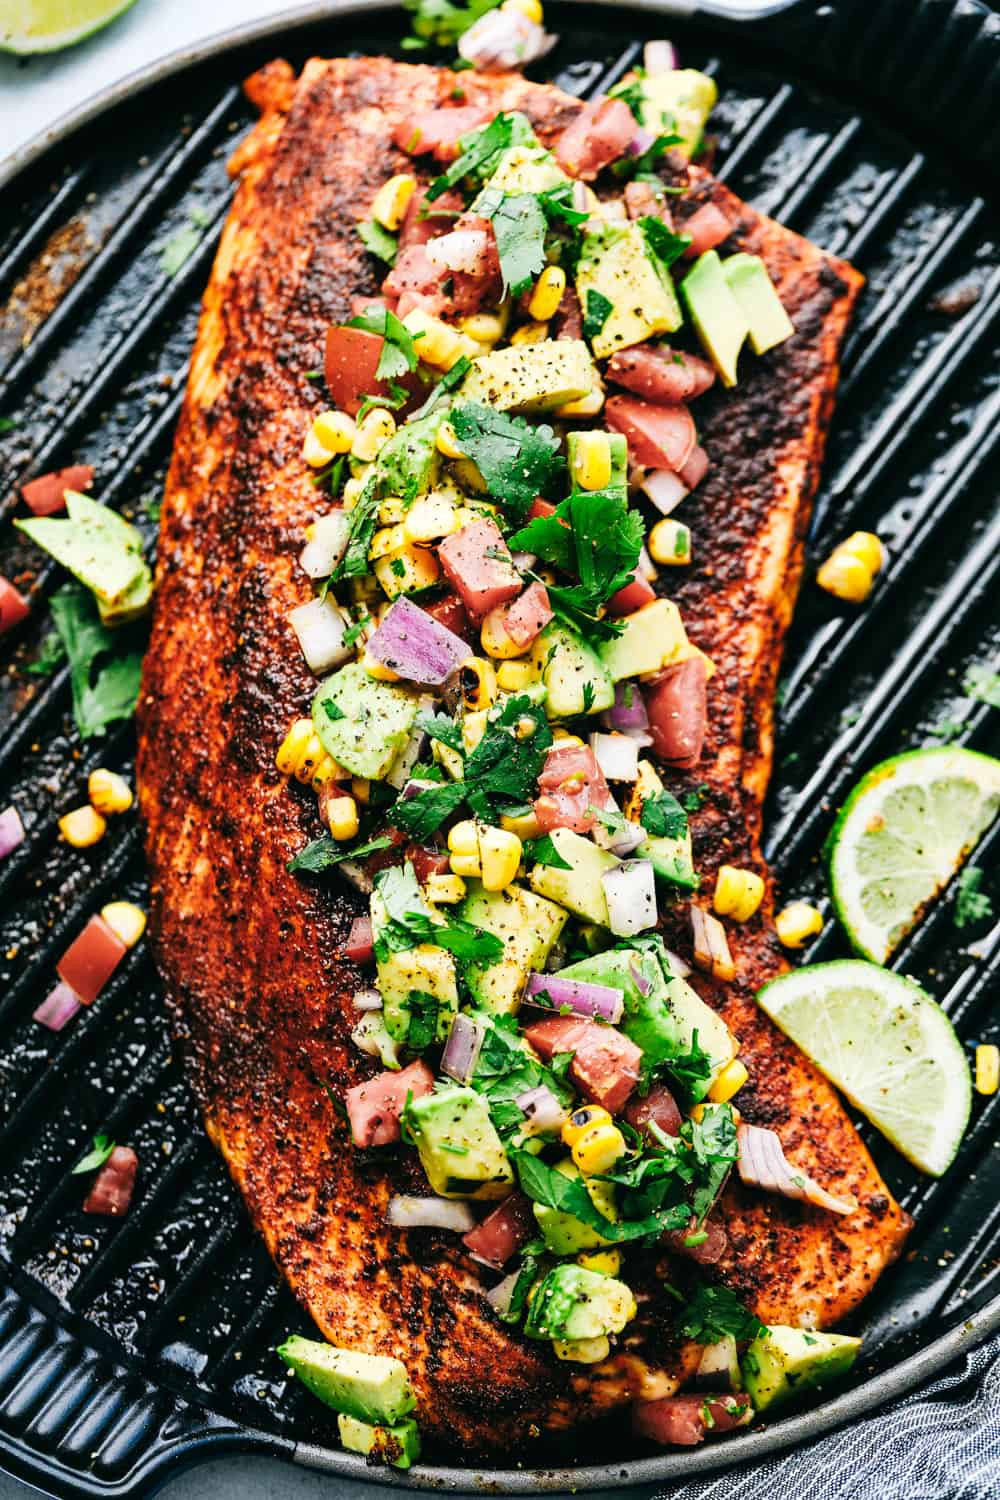 Grilled Salmon topped with Avocado Salsa on a grill.